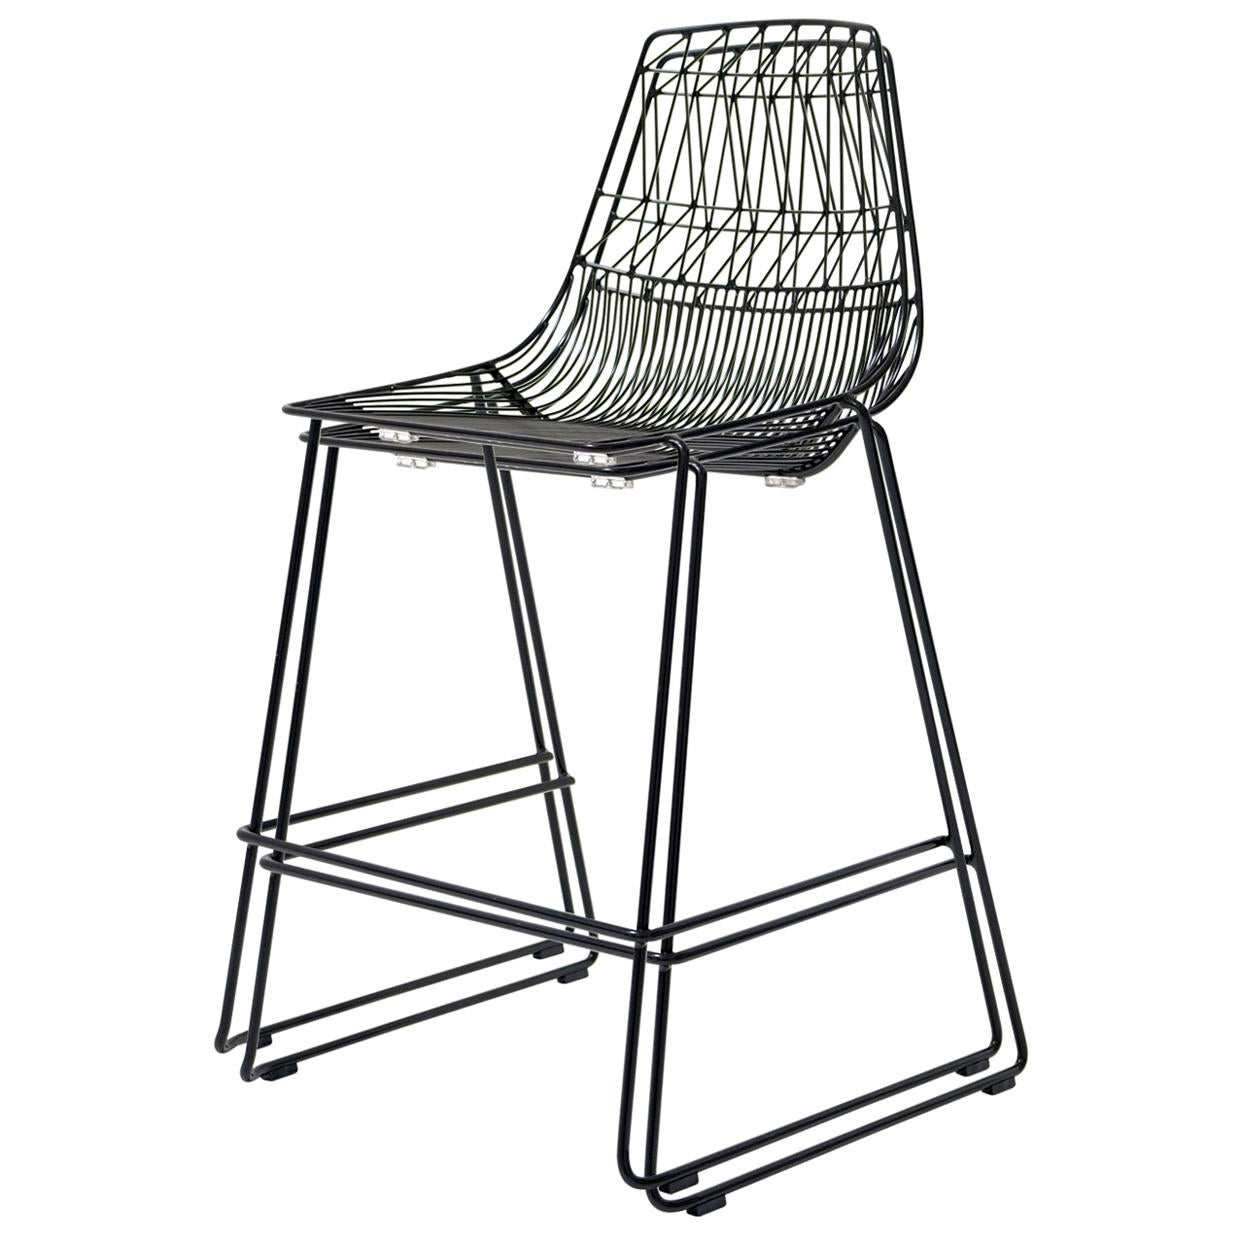 Mid-Century Modern, Minimalist Stacking Counter Stool, Wire Stool in Black